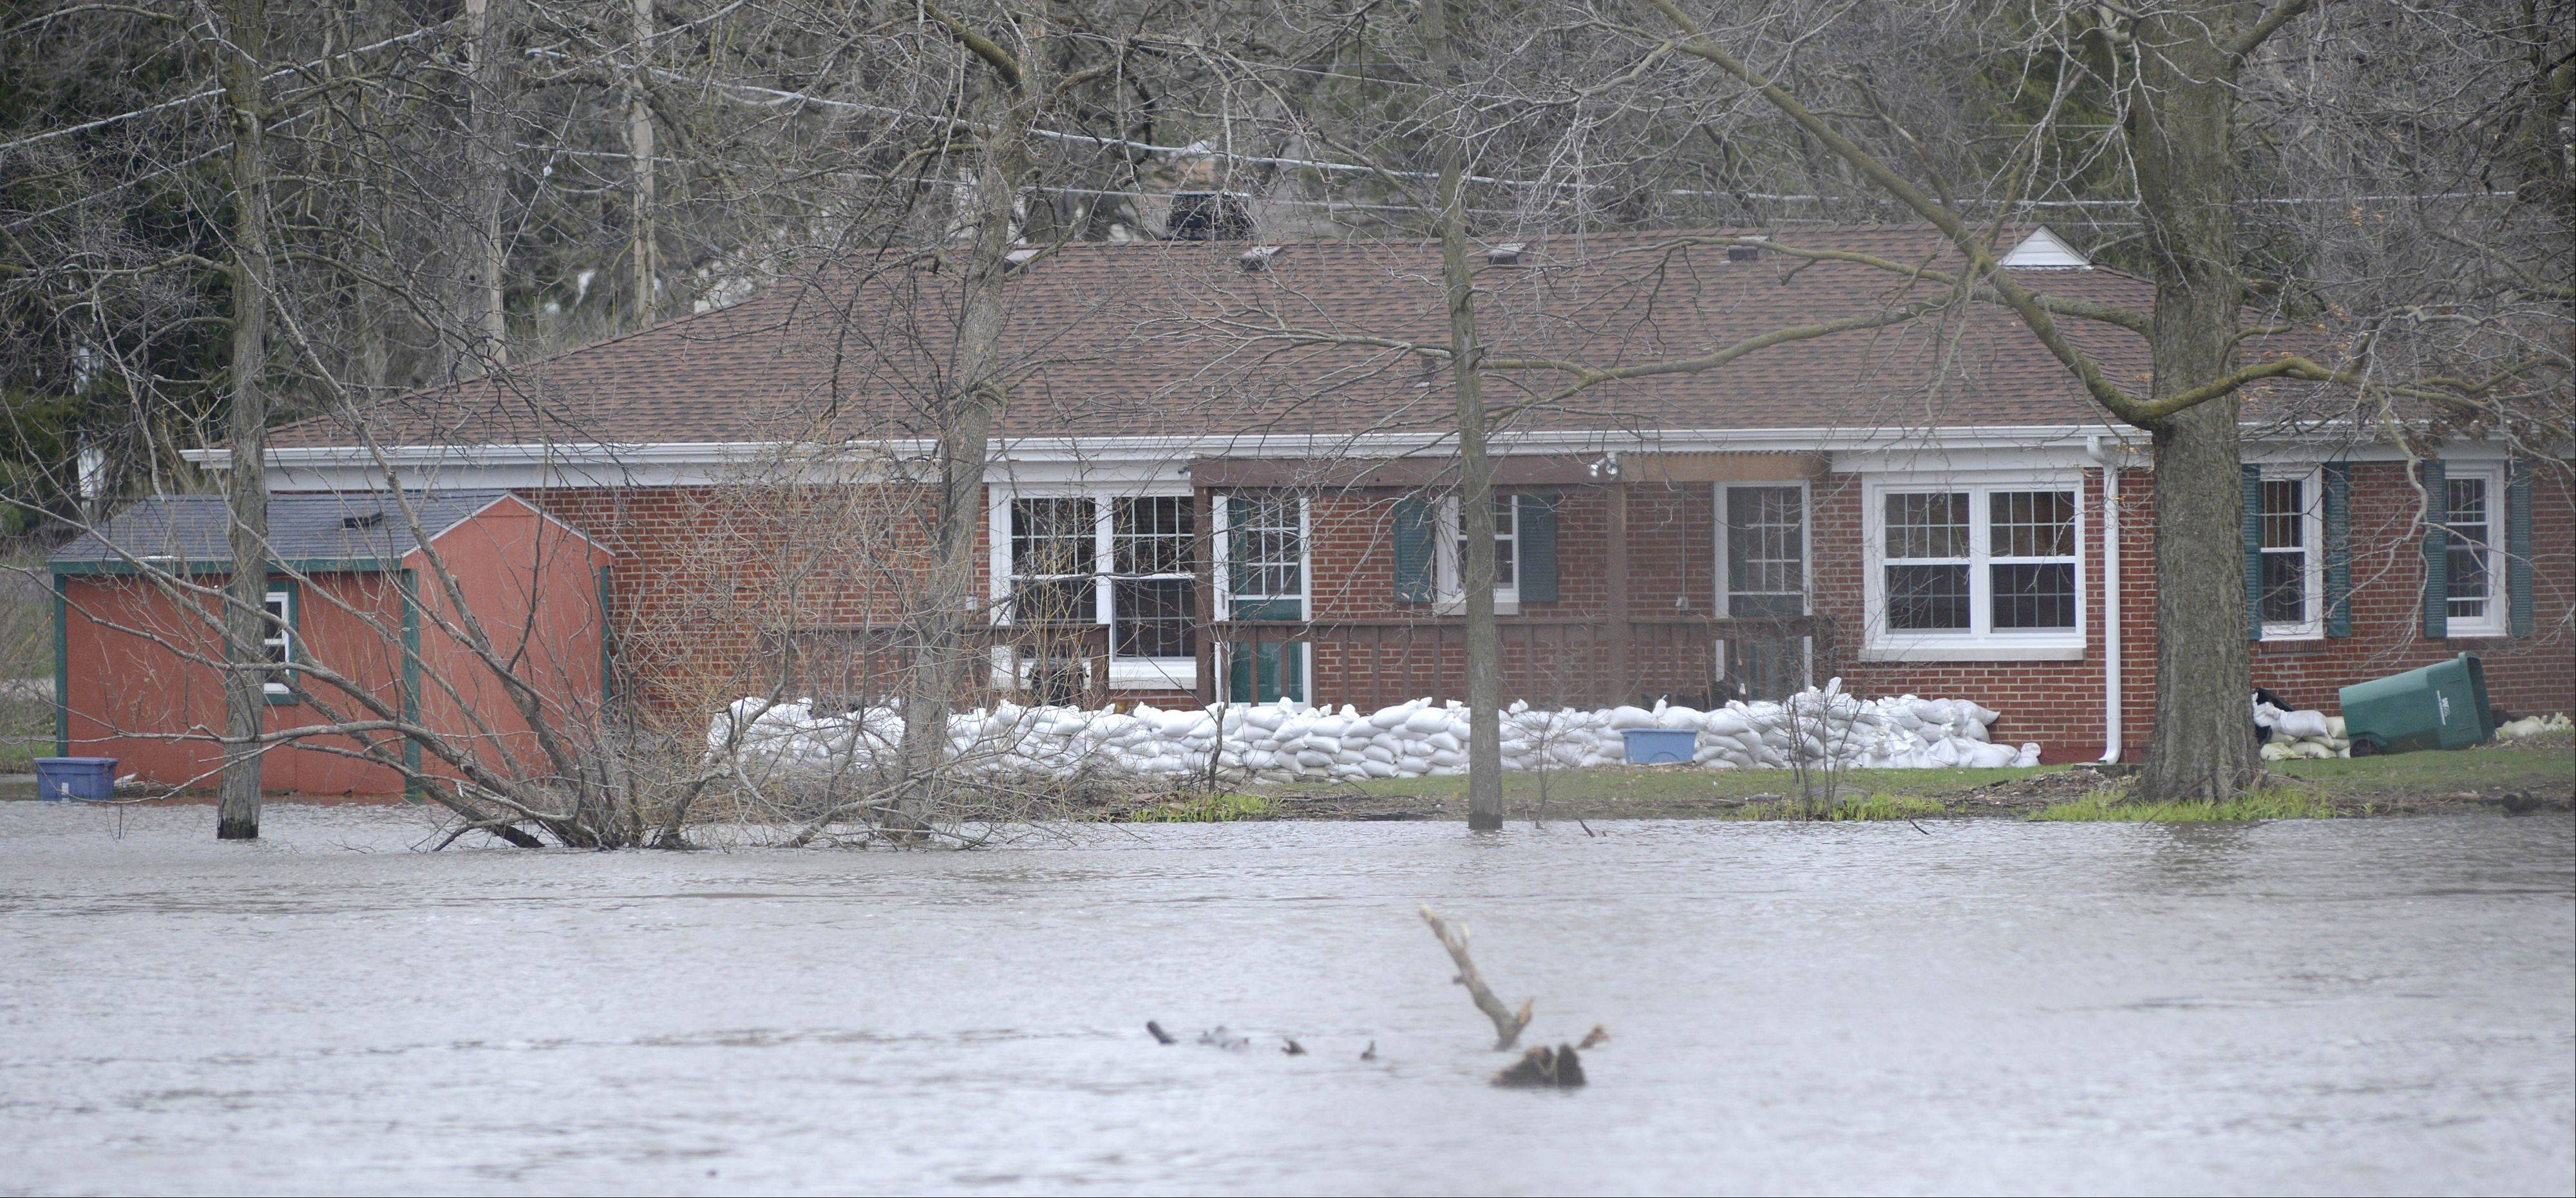 Homes on the west bank of the Fox River are prepared for rising waters in St. Charles on Friday, April 19. Waters have receded somewhat from yesterday judging by debris left behind.